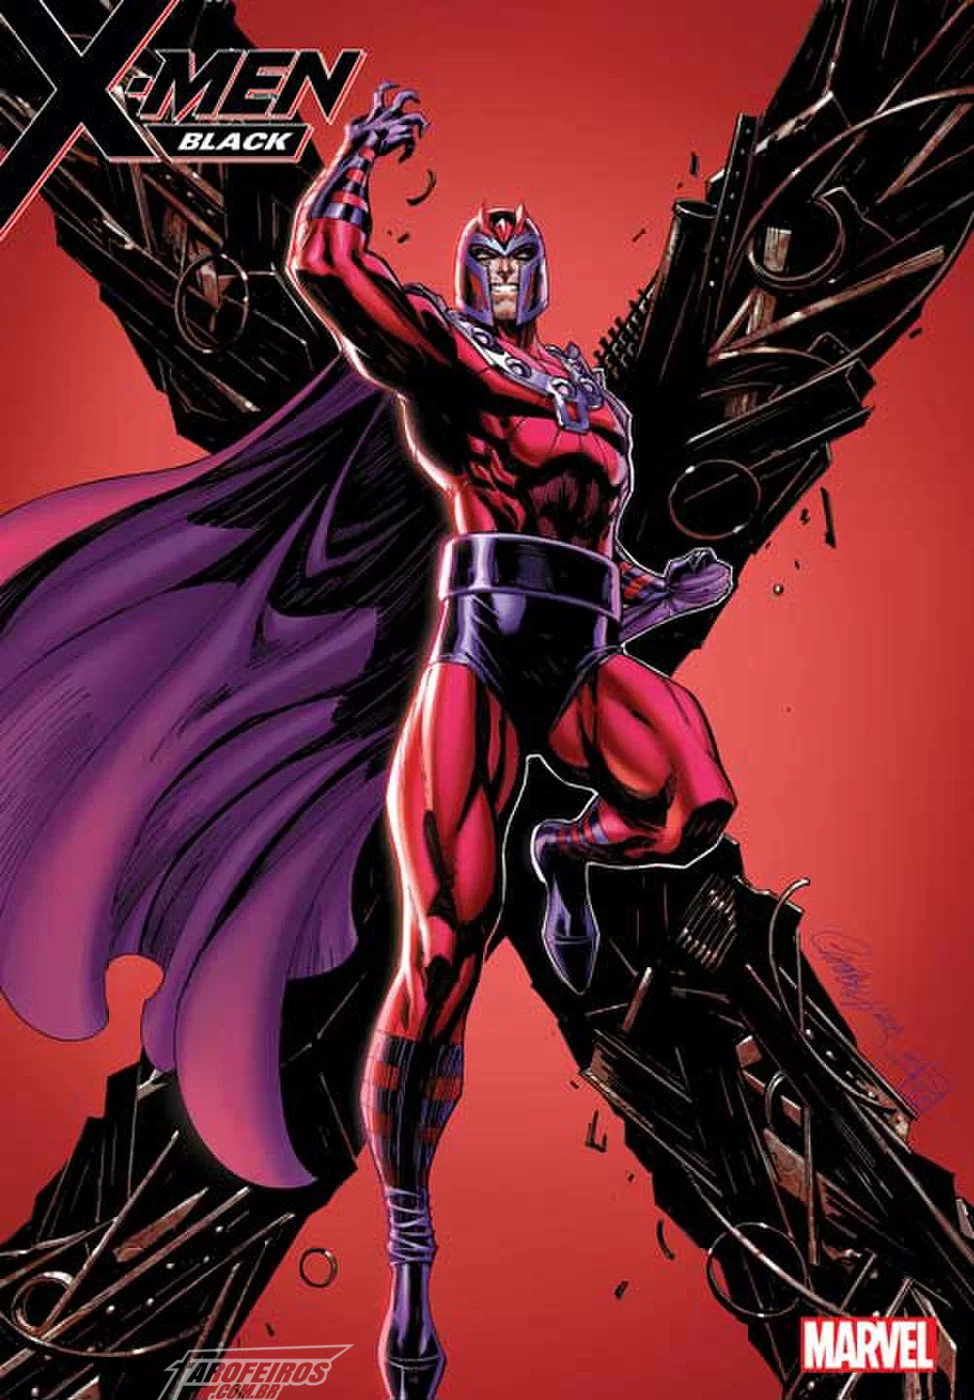 O melhor da Marvel na SDCC 2018 - X-Men Black - Magneto - J Scott Campbell